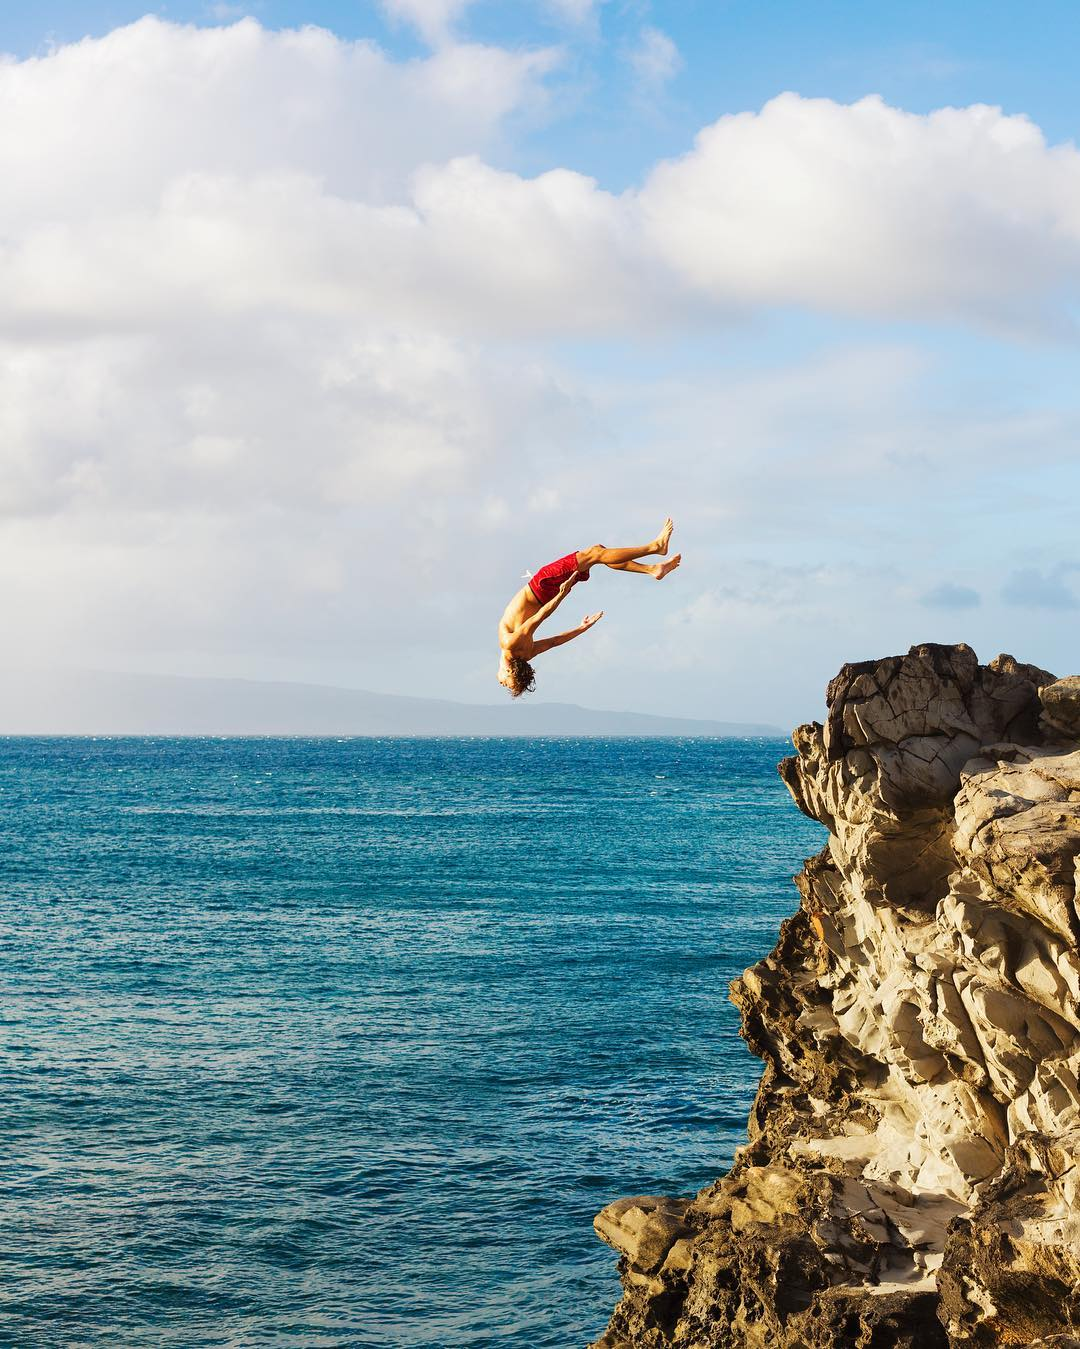 If things seem under control, you're just not going fast enough. #lifesoundsgood #quote #cliffjump #tuesdayinspiration #adventure